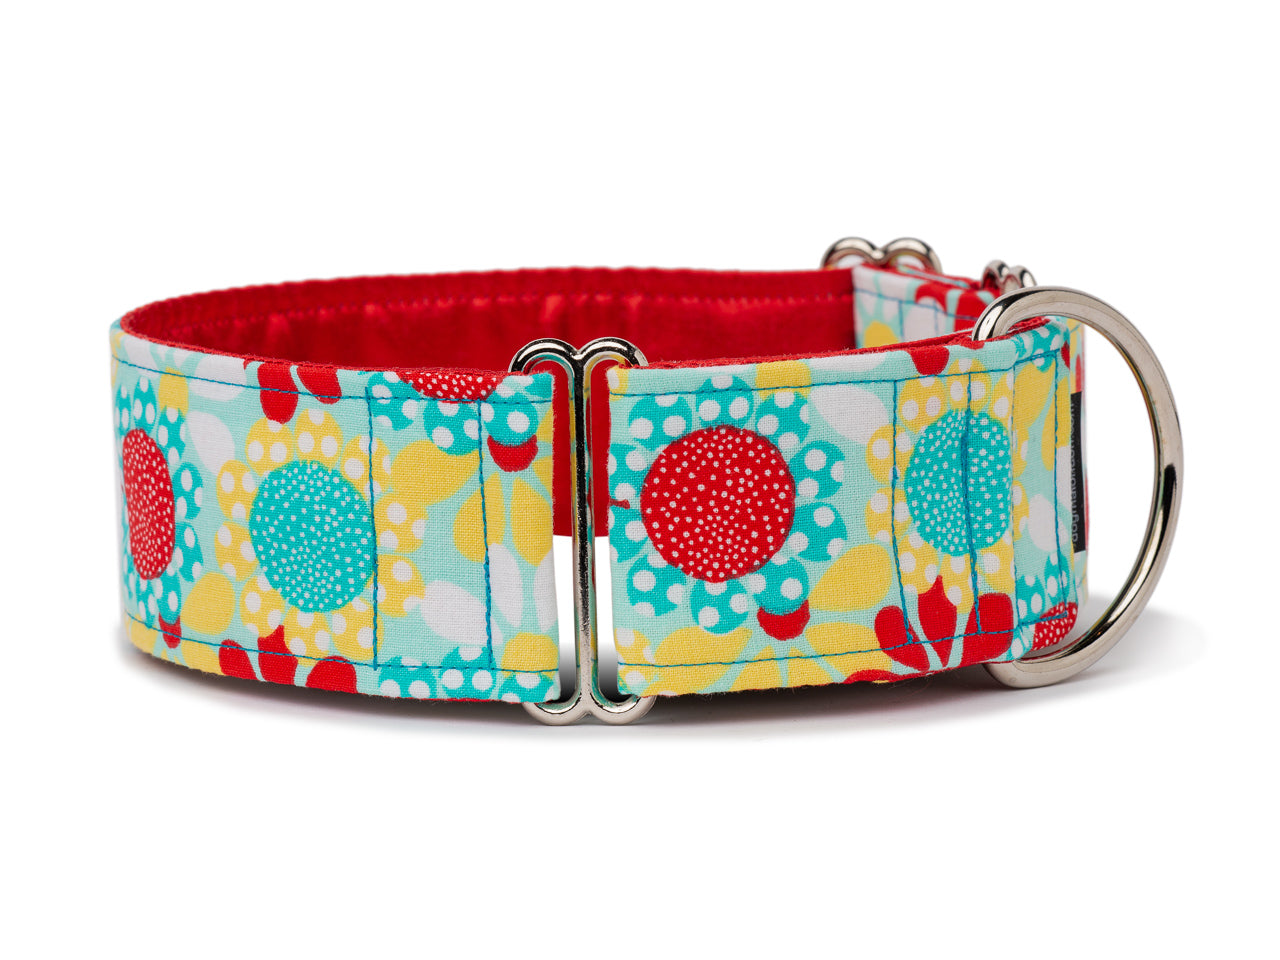 Brighten up your pup's day with these crazy daisies in bright bursts of yellow, blue, and red!